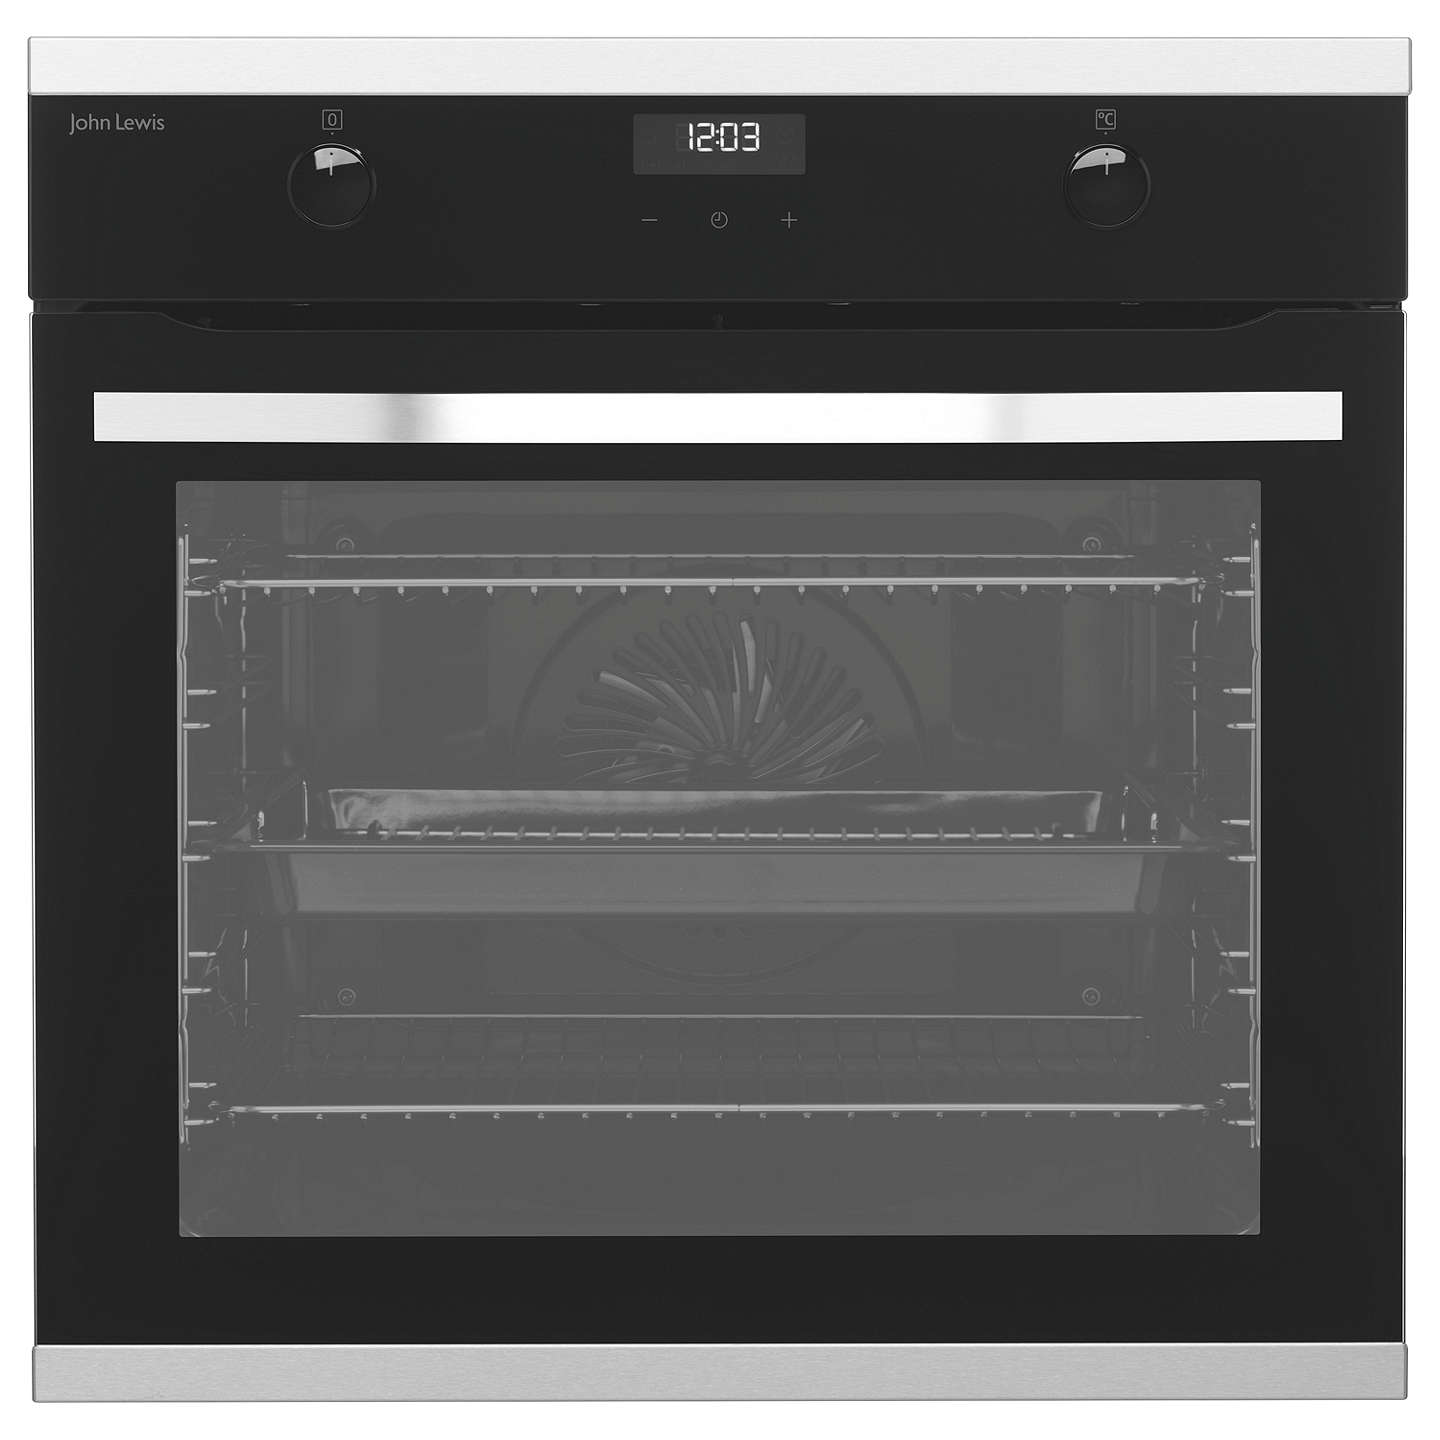 John Lewis JLBIOS631 Single Multifunction Oven, Stainless Steel at ...